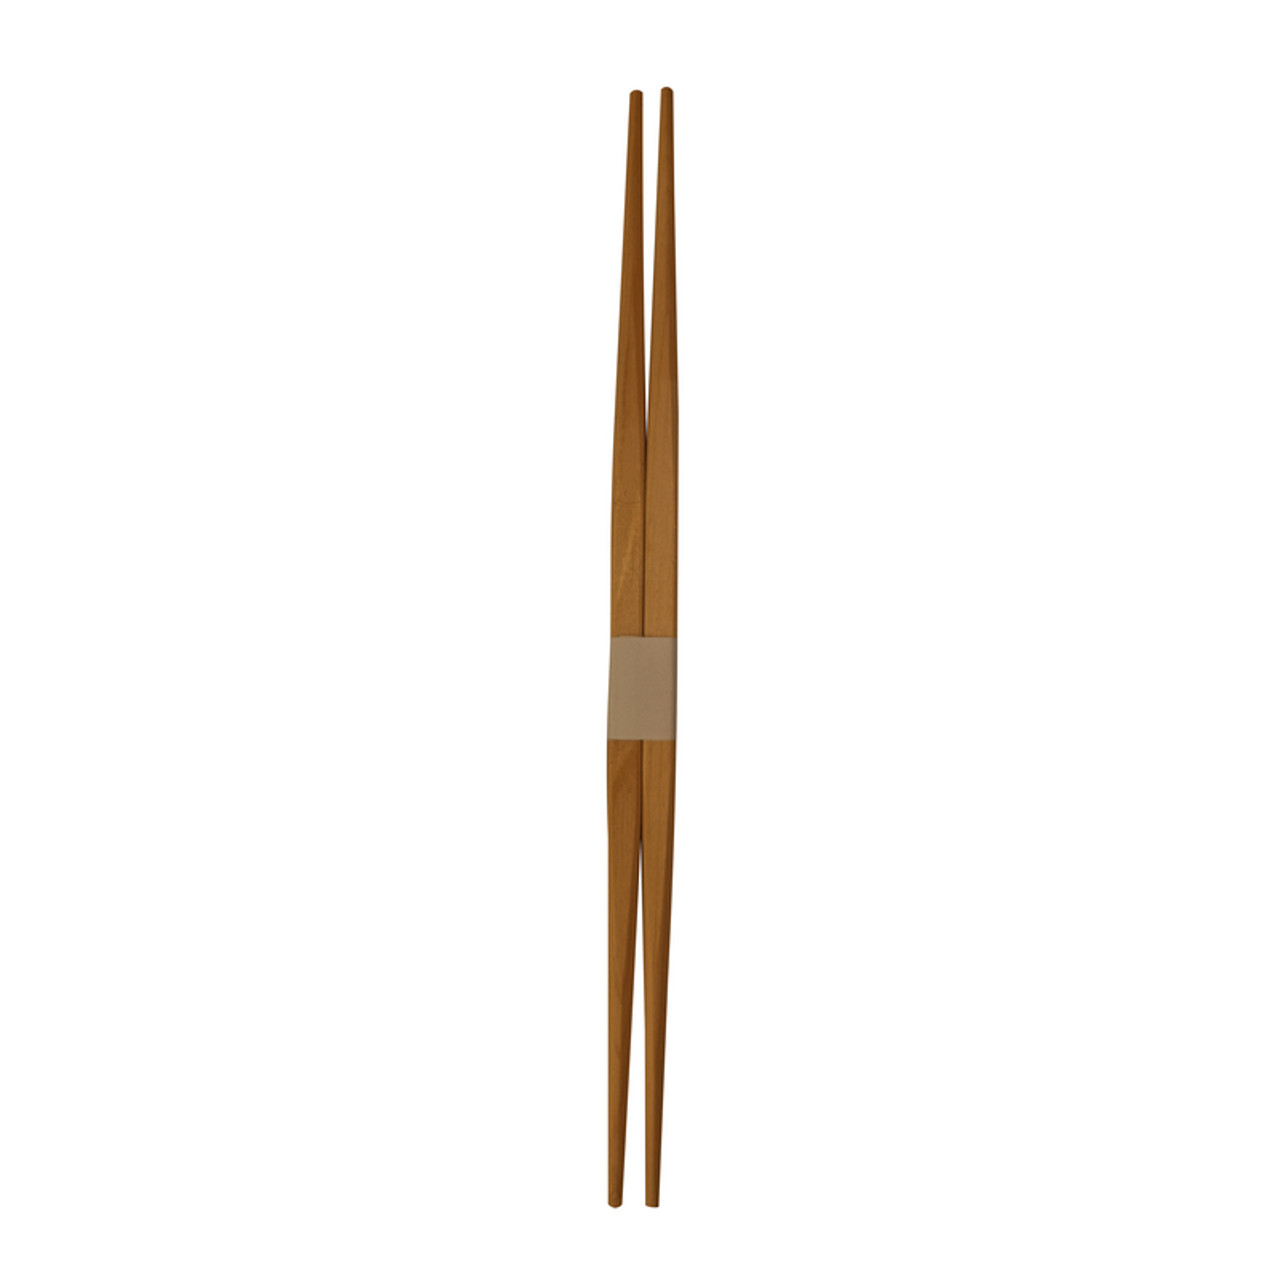 Bamboo Stylish Chopsticks - L:9.5in